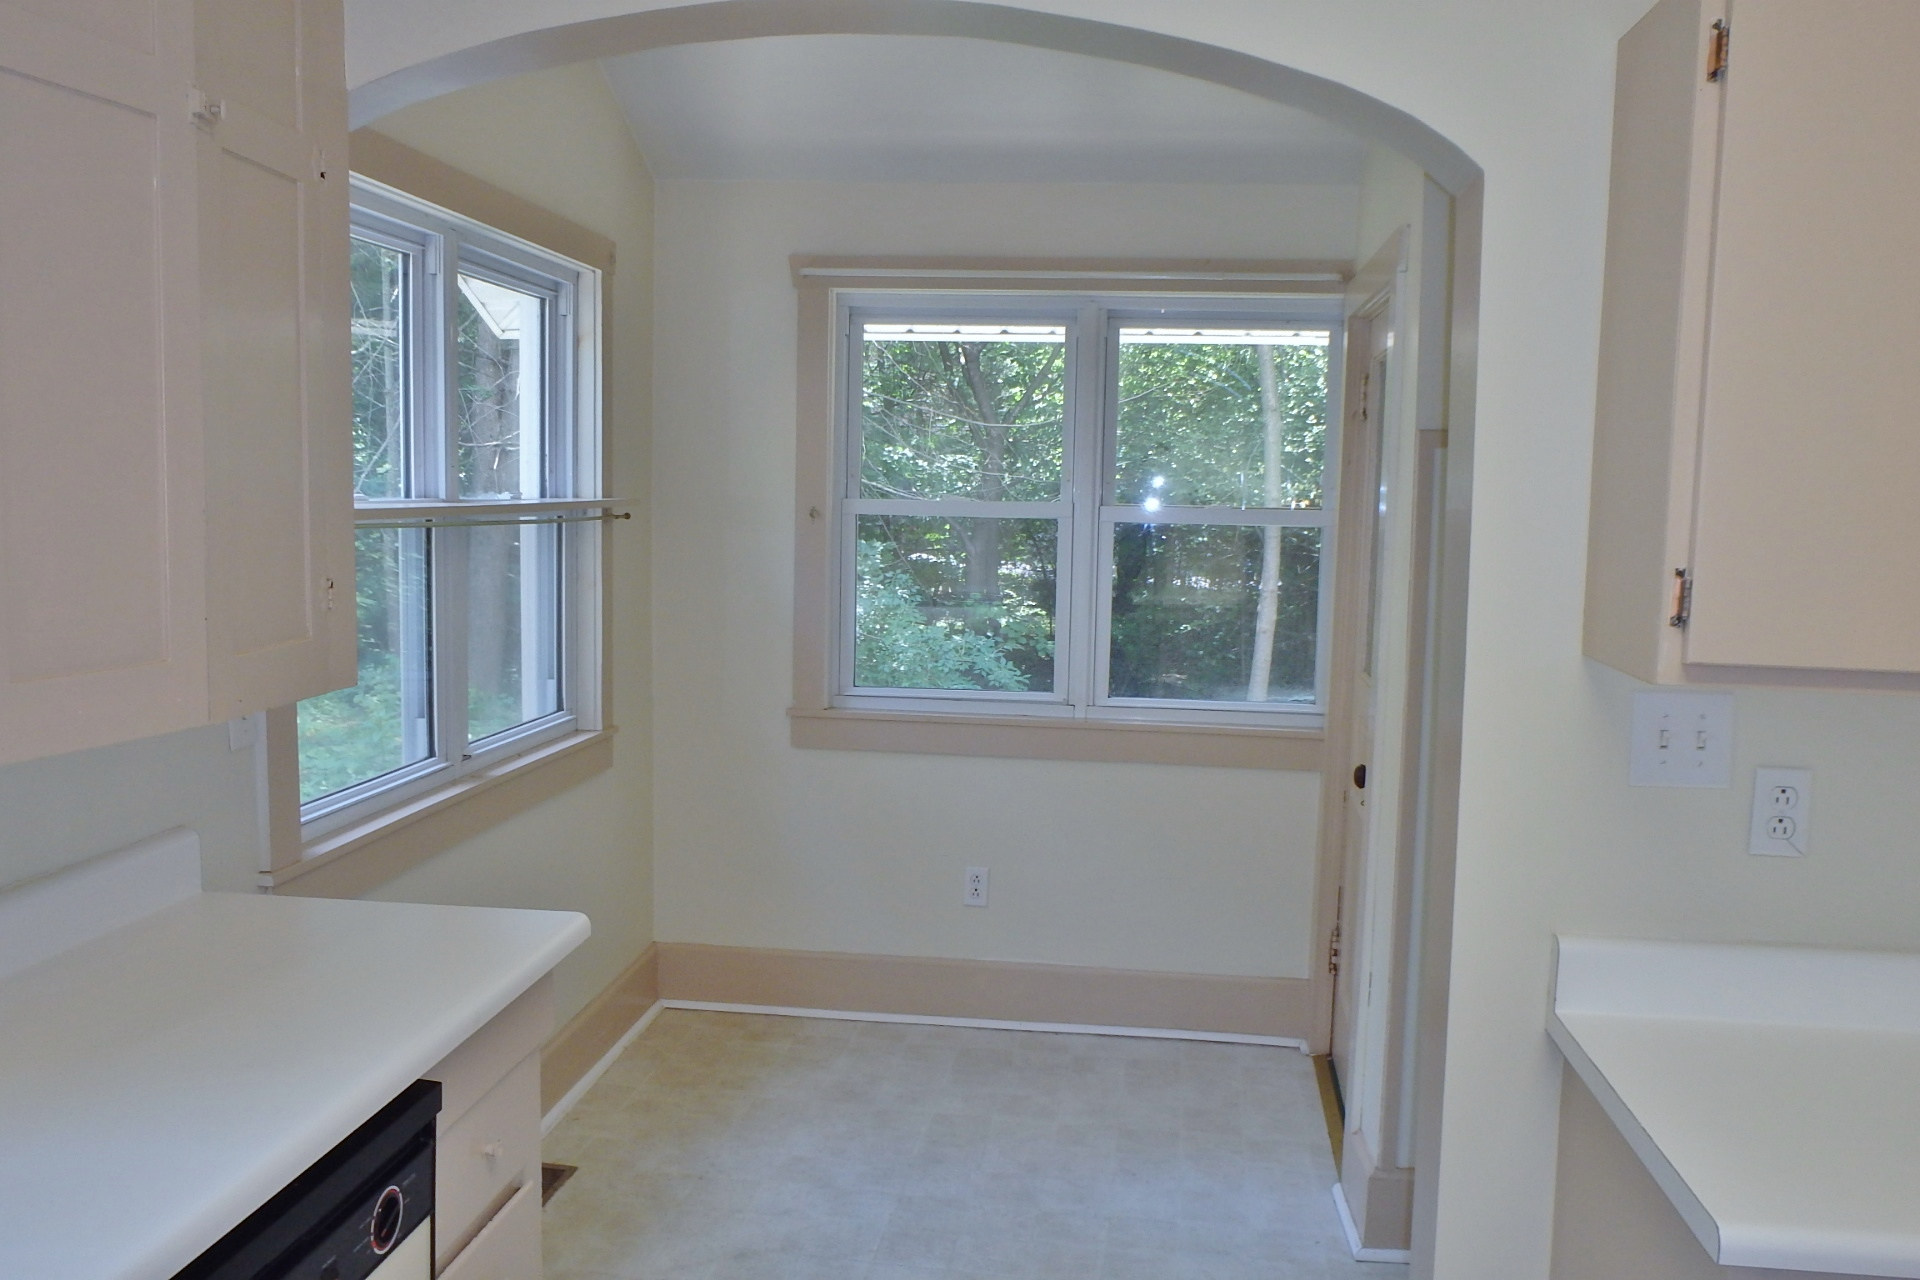 Breakfast nook photo of the house for rent at 250 S. Barnard Street, State College.